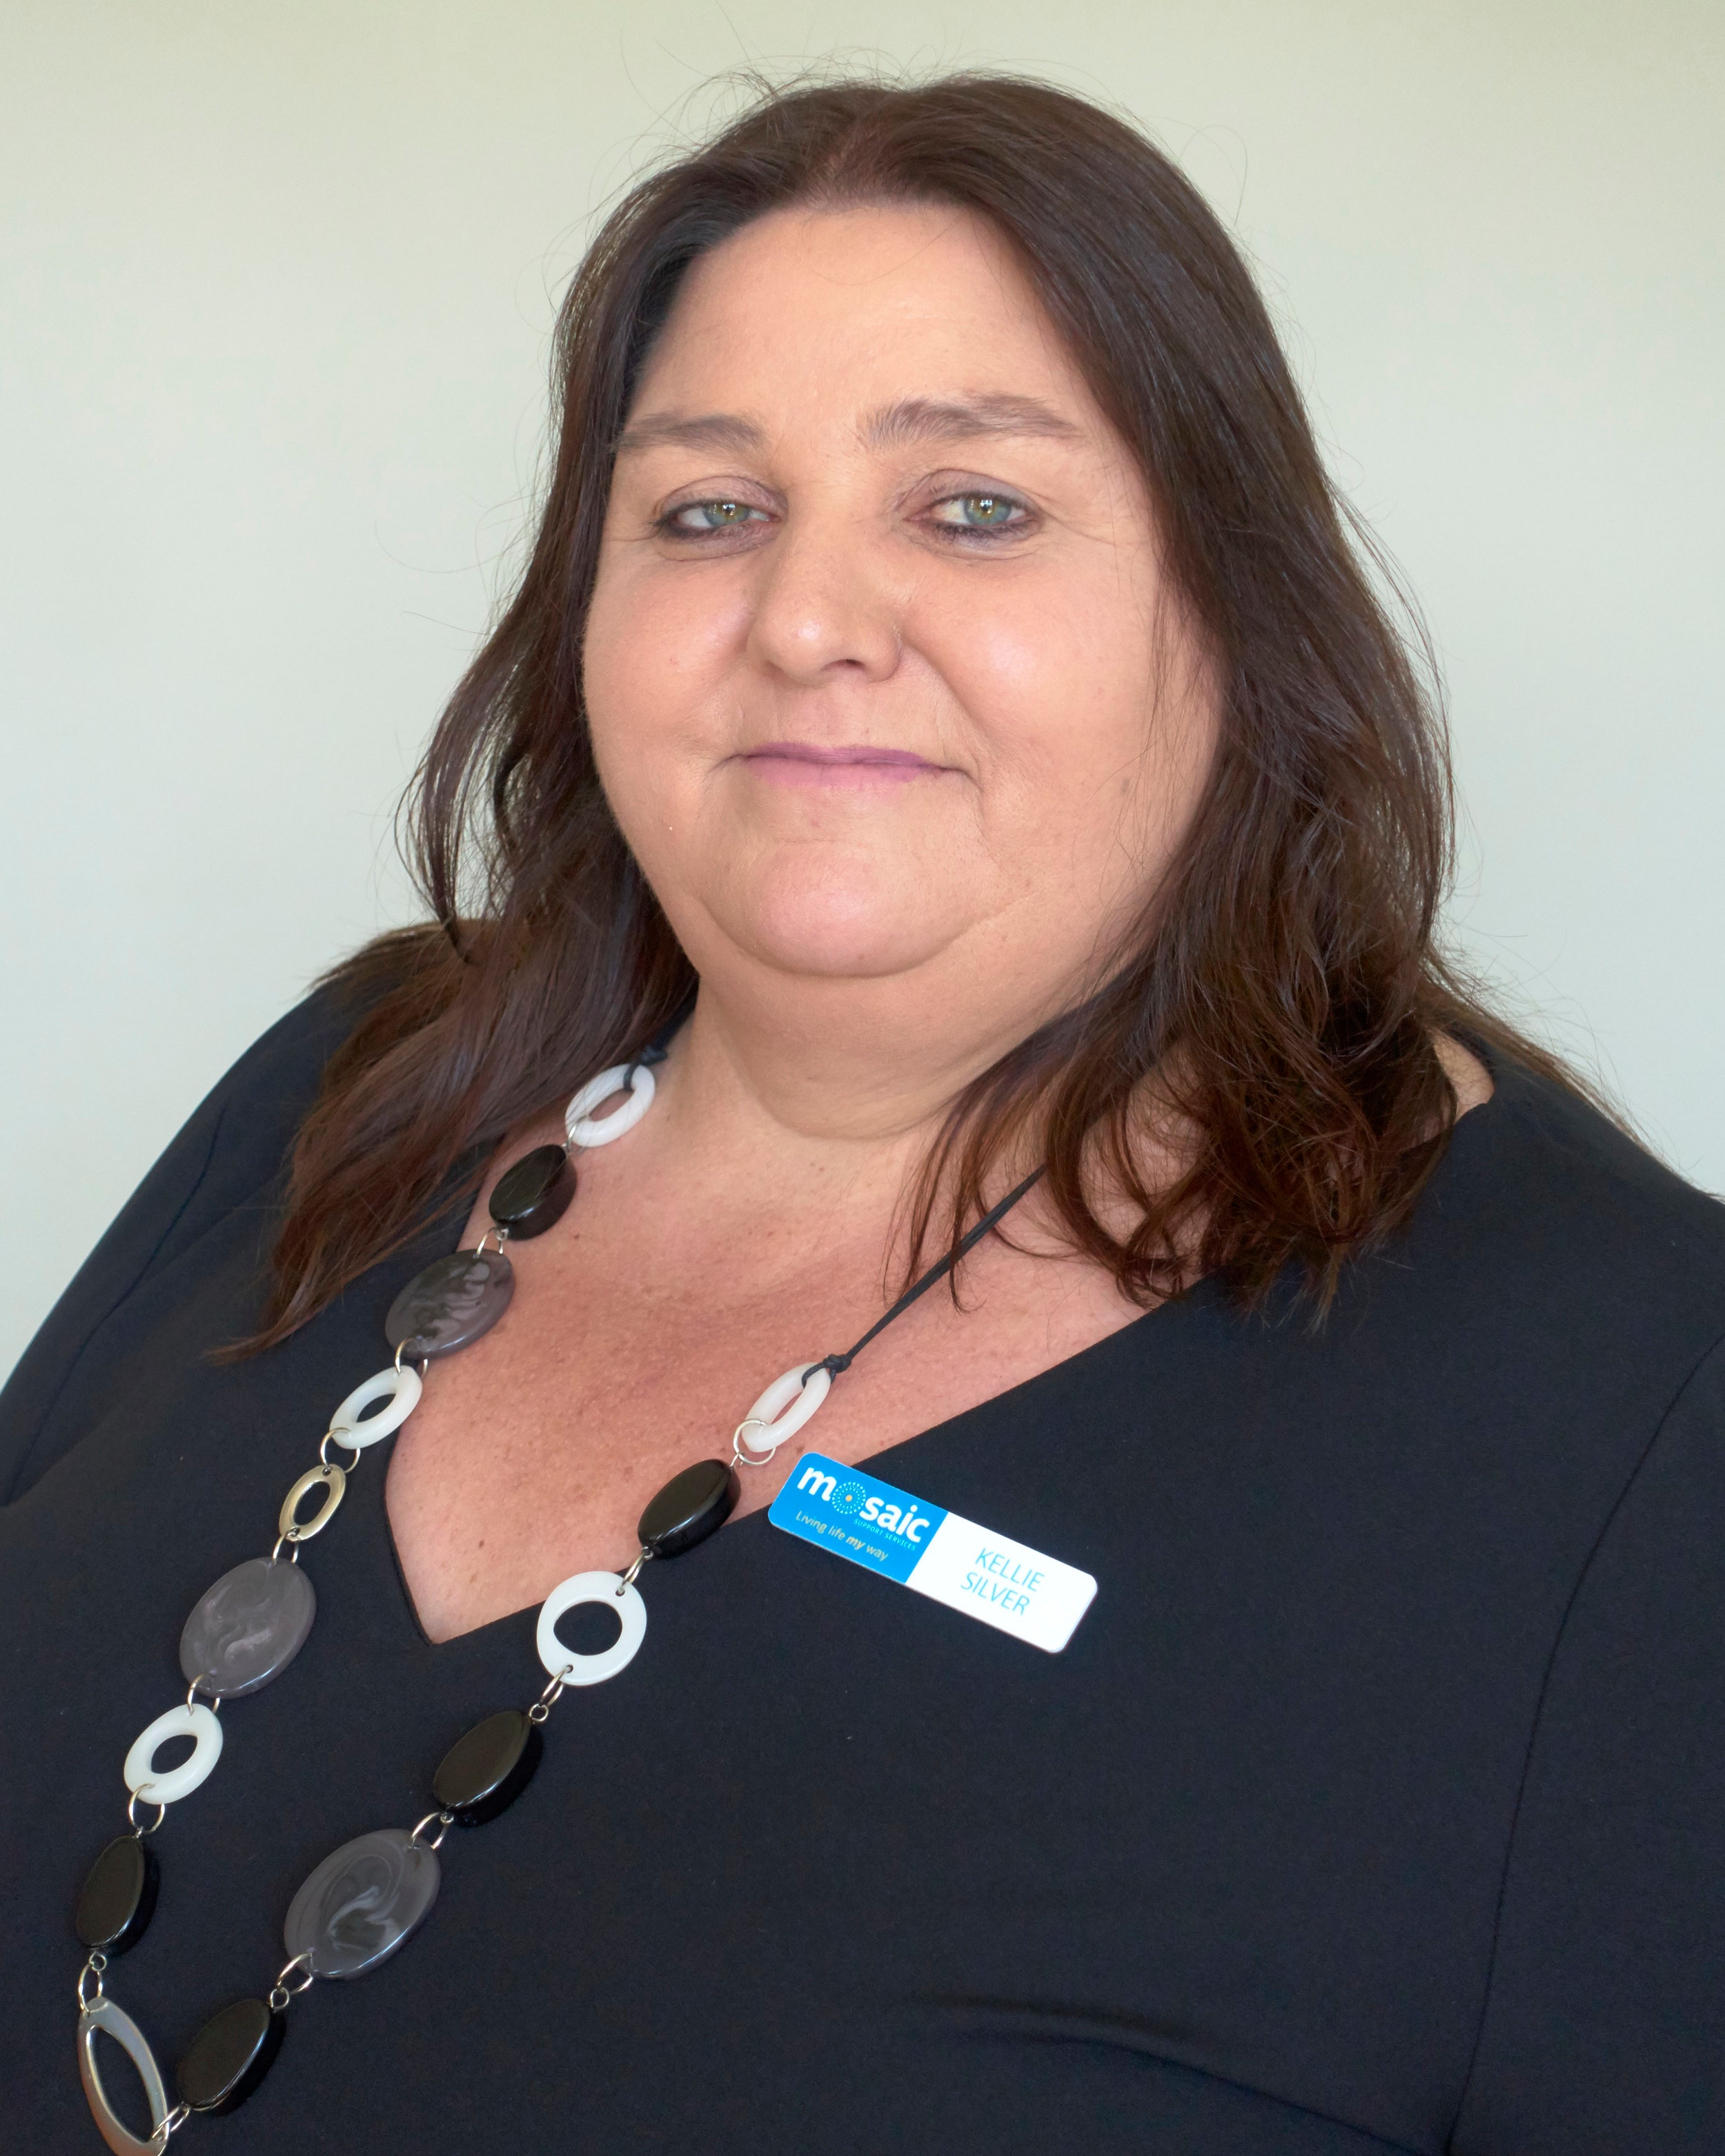 Kellie Silver - General Manager – Community AccessKellie leads the creative, health and wellbeing programs, camp, vacation care options, social activities, skills based and individualised programs for Mosaic.Kellie has been with Mosaic since 2003, starting her career with the organisation as a Disability Support Worker, then progressing to a Key Worker position, then on to Team Leader, before moving to her current position. In 2009 Kellie was the winner of the NDS Inaugural Alex Tubb Disability Young Worker of the Year Award.Kellie has a Bachelor of Arts with Professional Honours from the University of Tasmania, which locked in and formalised her very extensive hands on experience working with people with disabilities.